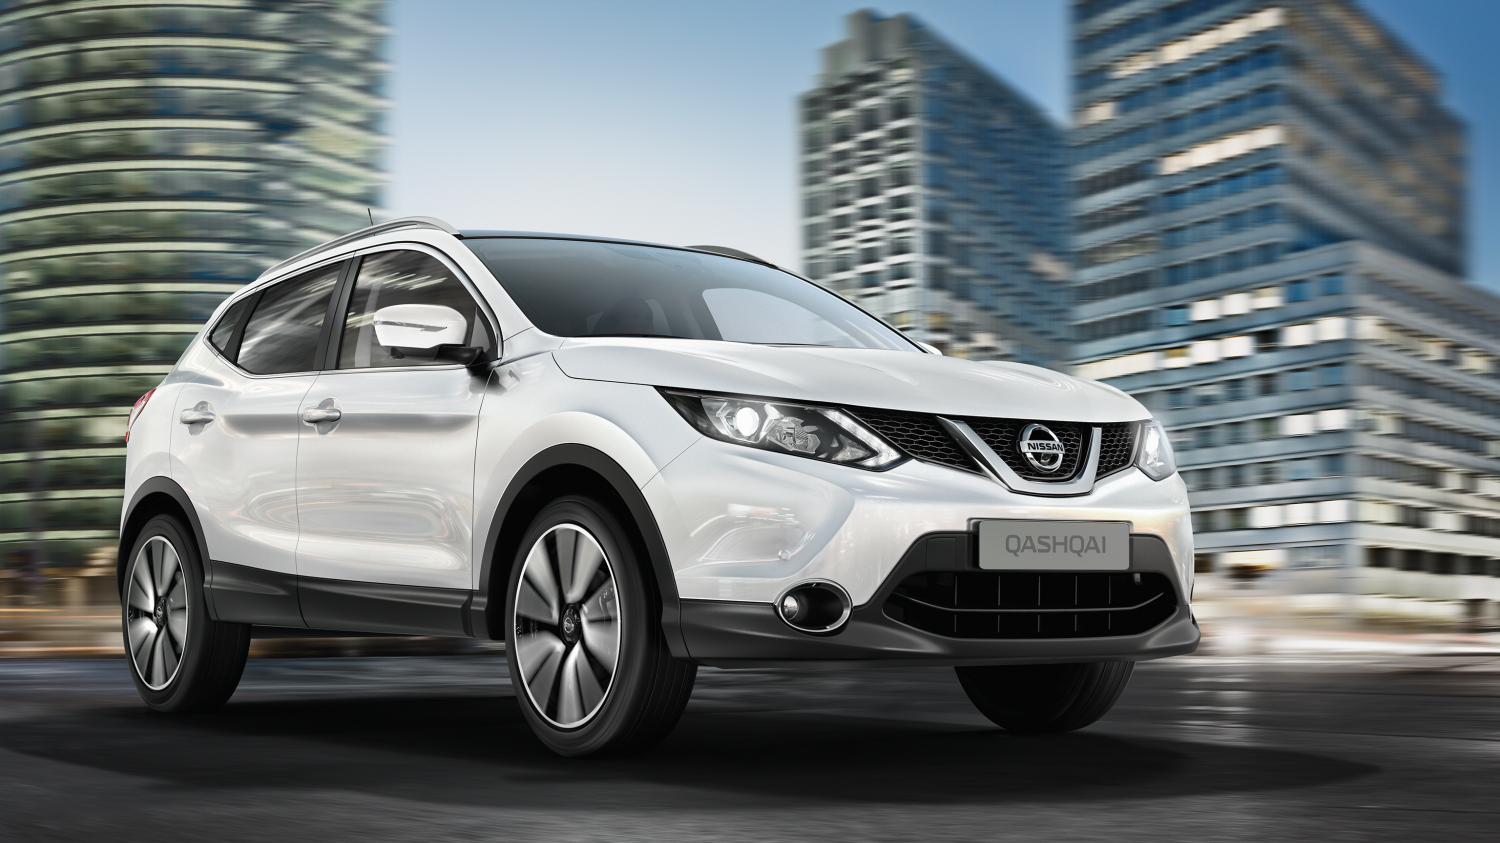 Nissan qashqai white front view